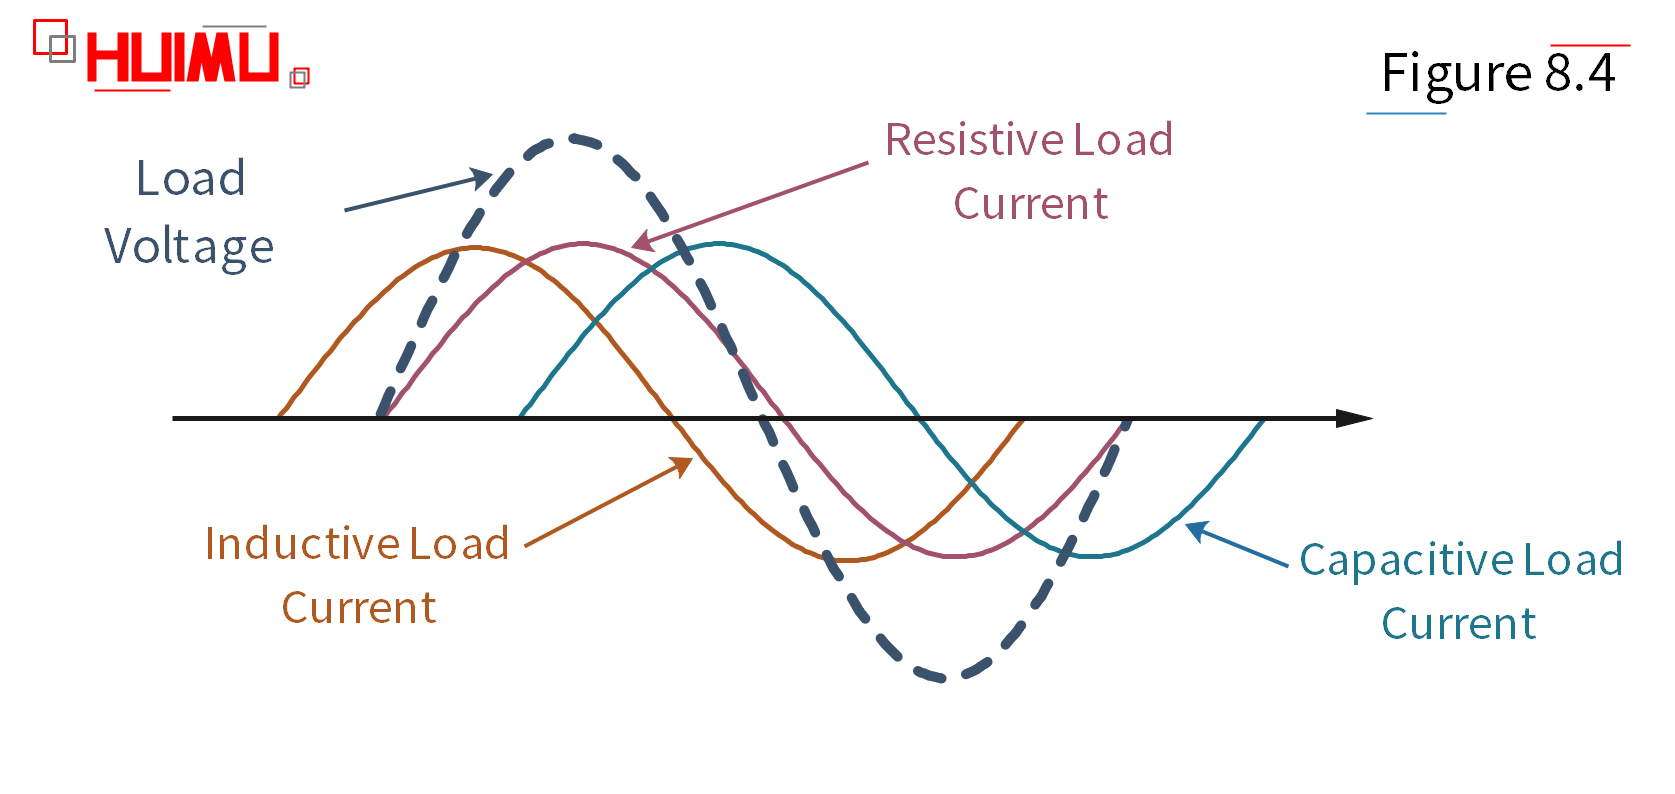 Load type of the solid state relays